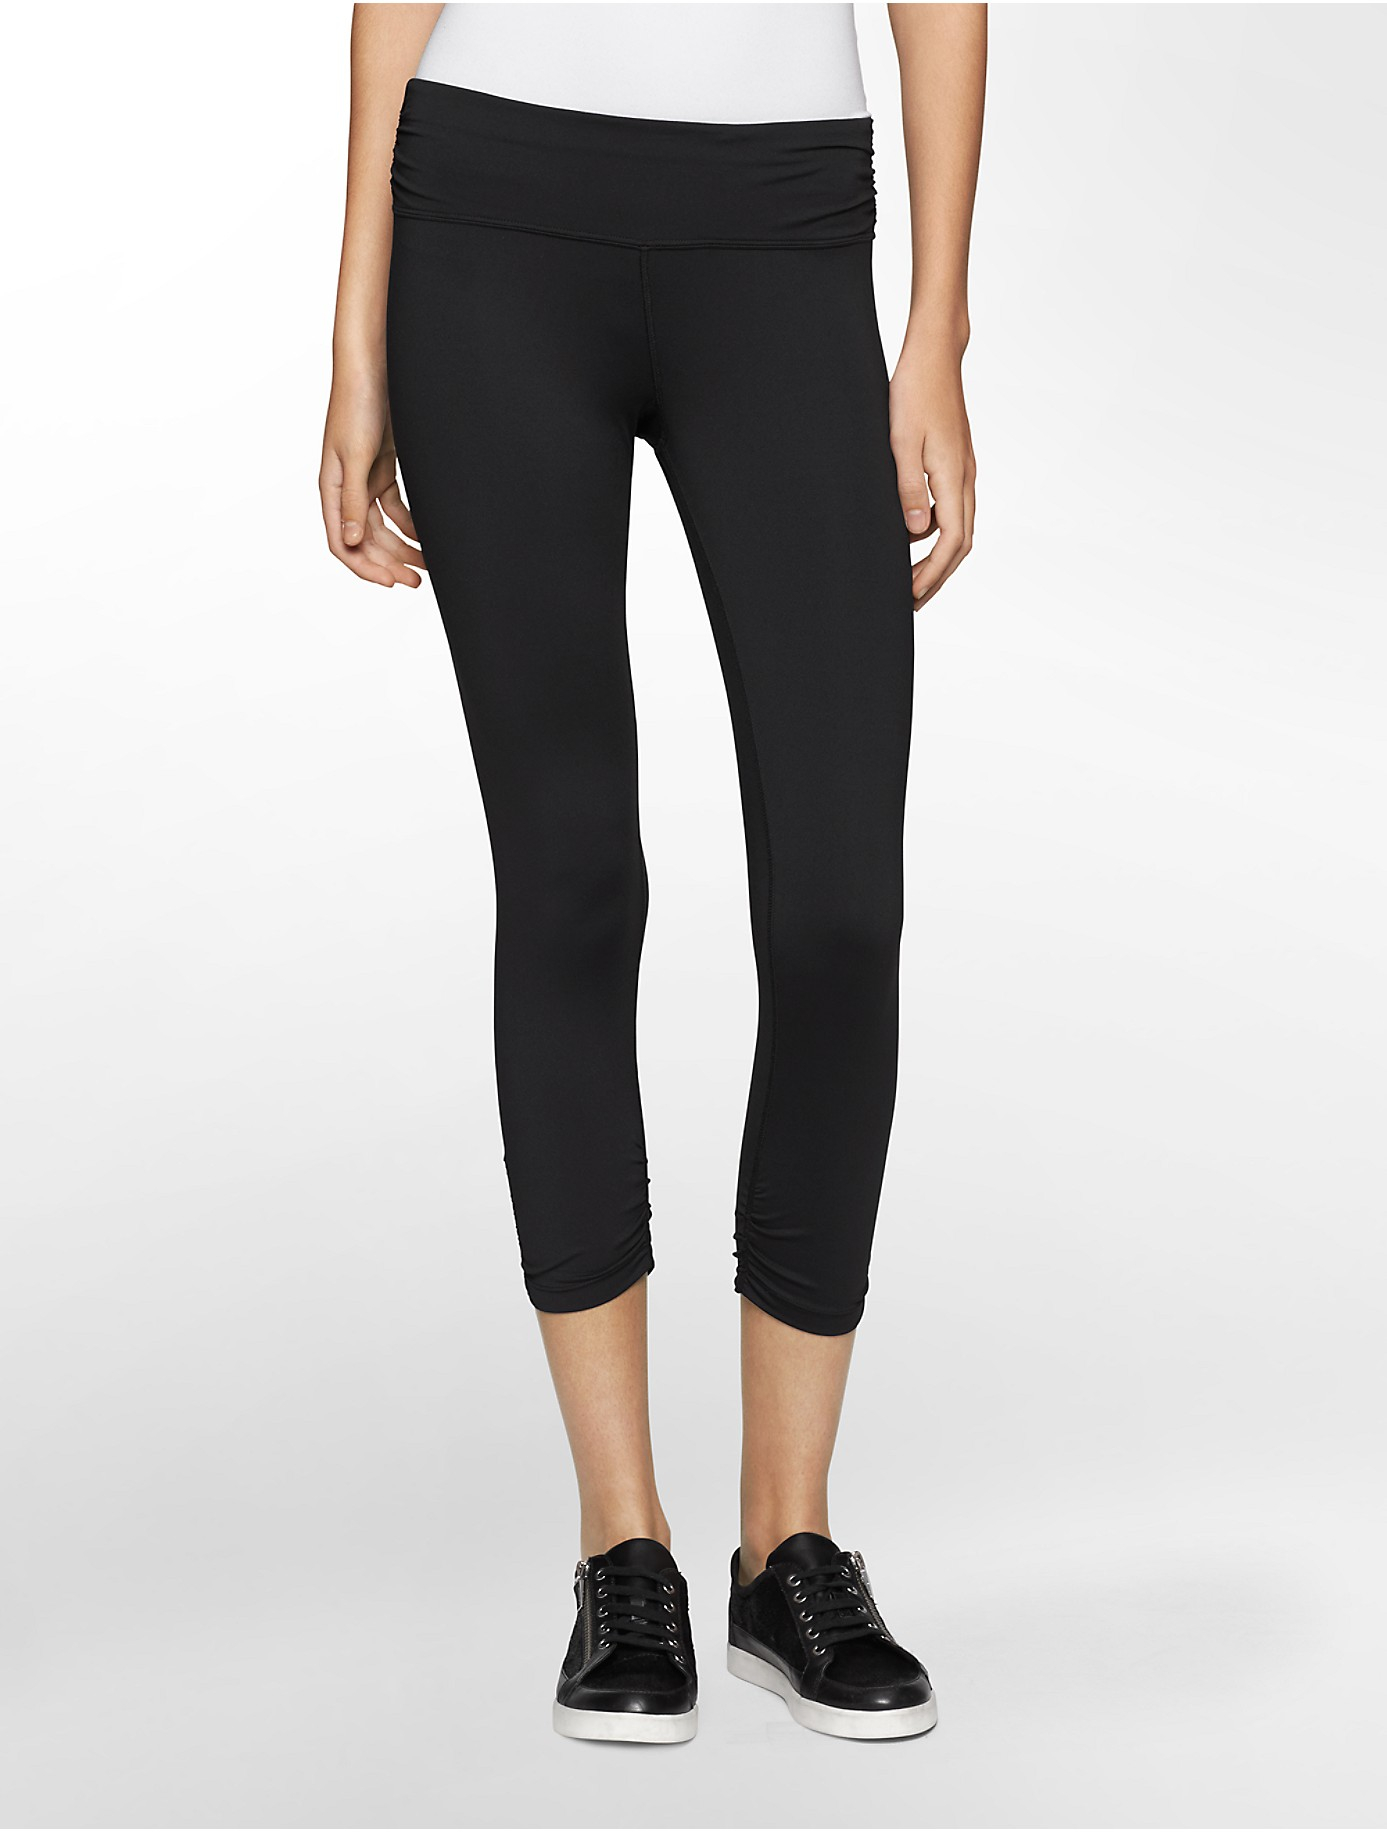 Calvin klein Performance Ruched Cropped Leggings in Black | Lyst